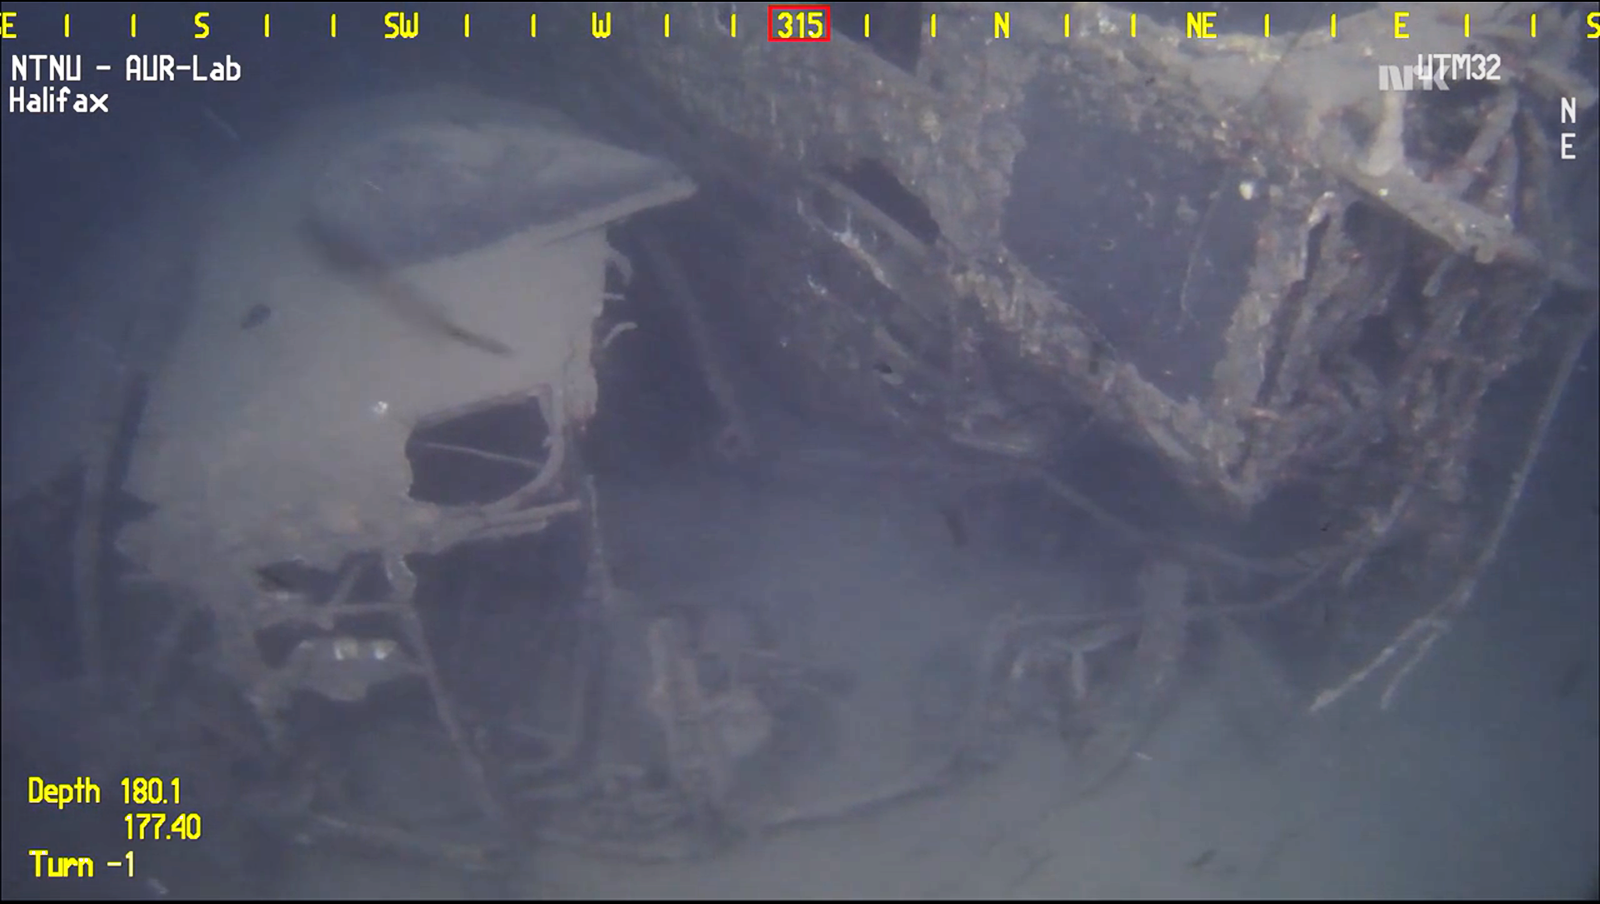 The Halifax's forward fuselage torn from the aircraft, lies on its left side beside the cockpit. (screen capture of video fromNTNU AUR-LAB)